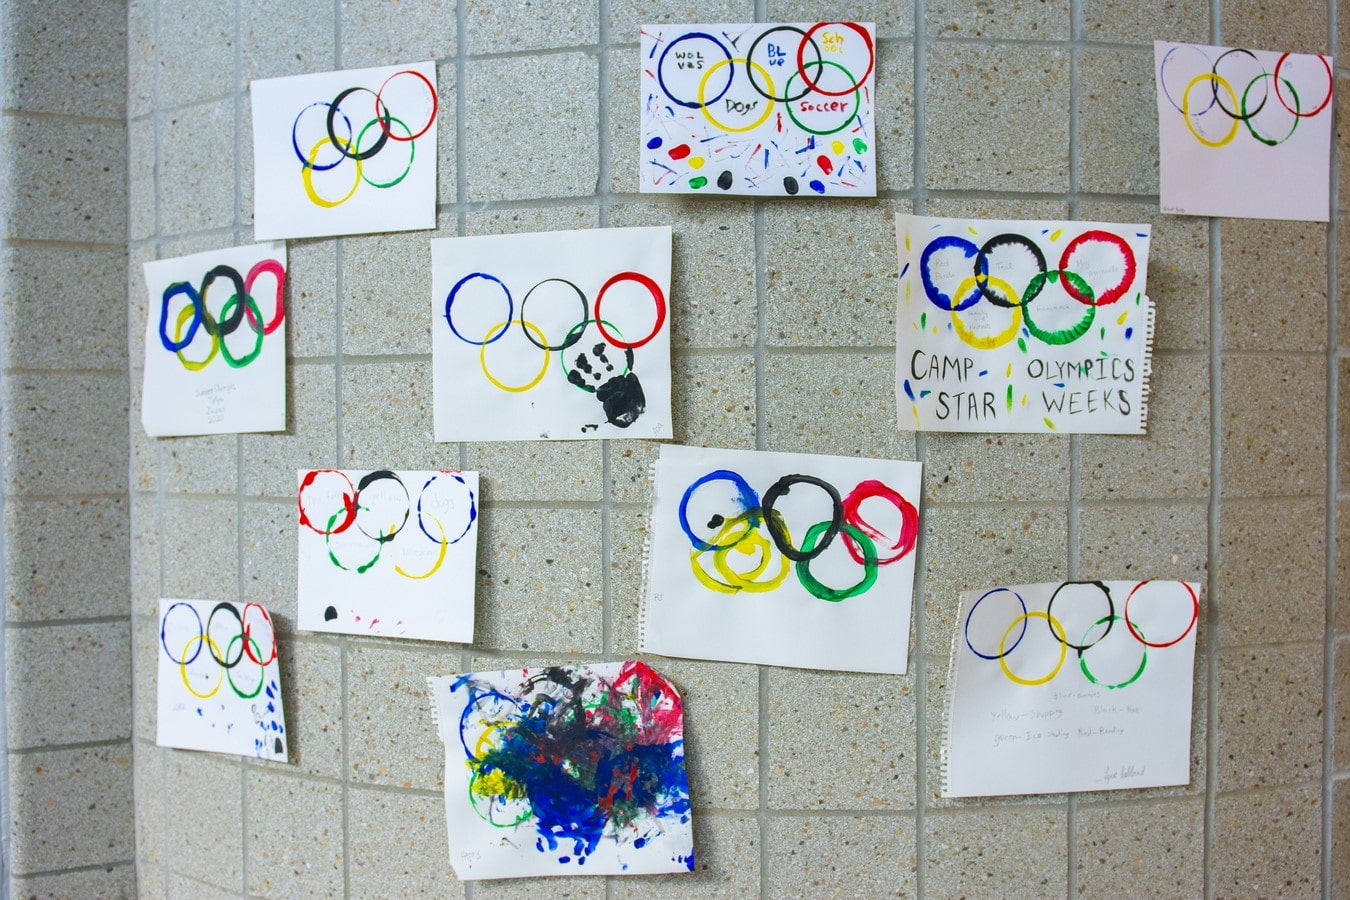 A collection of art hangs on the wall of the Training for Life Campus